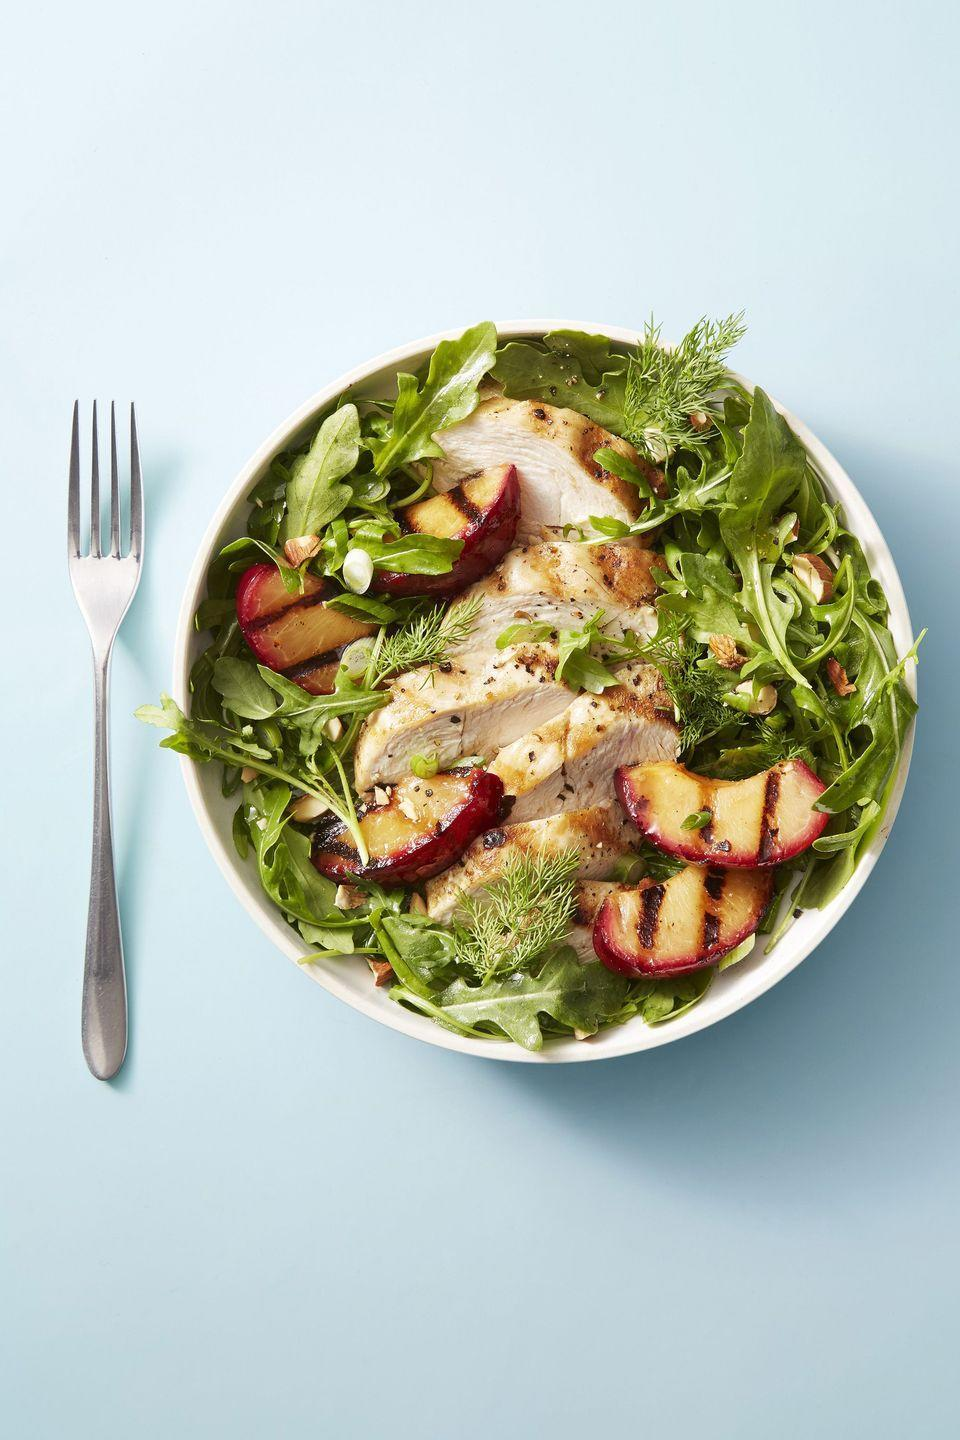 """<p>Since plum season doesn't last forever, make the most of it by throwing a few charred plums atop a bed of grilled chicken and greens. </p><p><em><a href=""""https://www.goodhousekeeping.com/food-recipes/easy/a21601672/chicken-and-red-plum-salad-recipe/"""" rel=""""nofollow noopener"""" target=""""_blank"""" data-ylk=""""slk:Get the recipe for Chicken and Red Plum Salad »"""" class=""""link rapid-noclick-resp"""">Get the recipe for Chicken and Red Plum Salad »</a></em></p><p><strong>RELATED: </strong><a href=""""https://www.goodhousekeeping.com/food-recipes/healthy/g2128/summer-salads/"""" rel=""""nofollow noopener"""" target=""""_blank"""" data-ylk=""""slk:40 Easy Summer Salads That Pack in the Best Seasonal Flavors"""" class=""""link rapid-noclick-resp"""">40 Easy Summer Salads That Pack in the Best Seasonal Flavors</a><br></p>"""